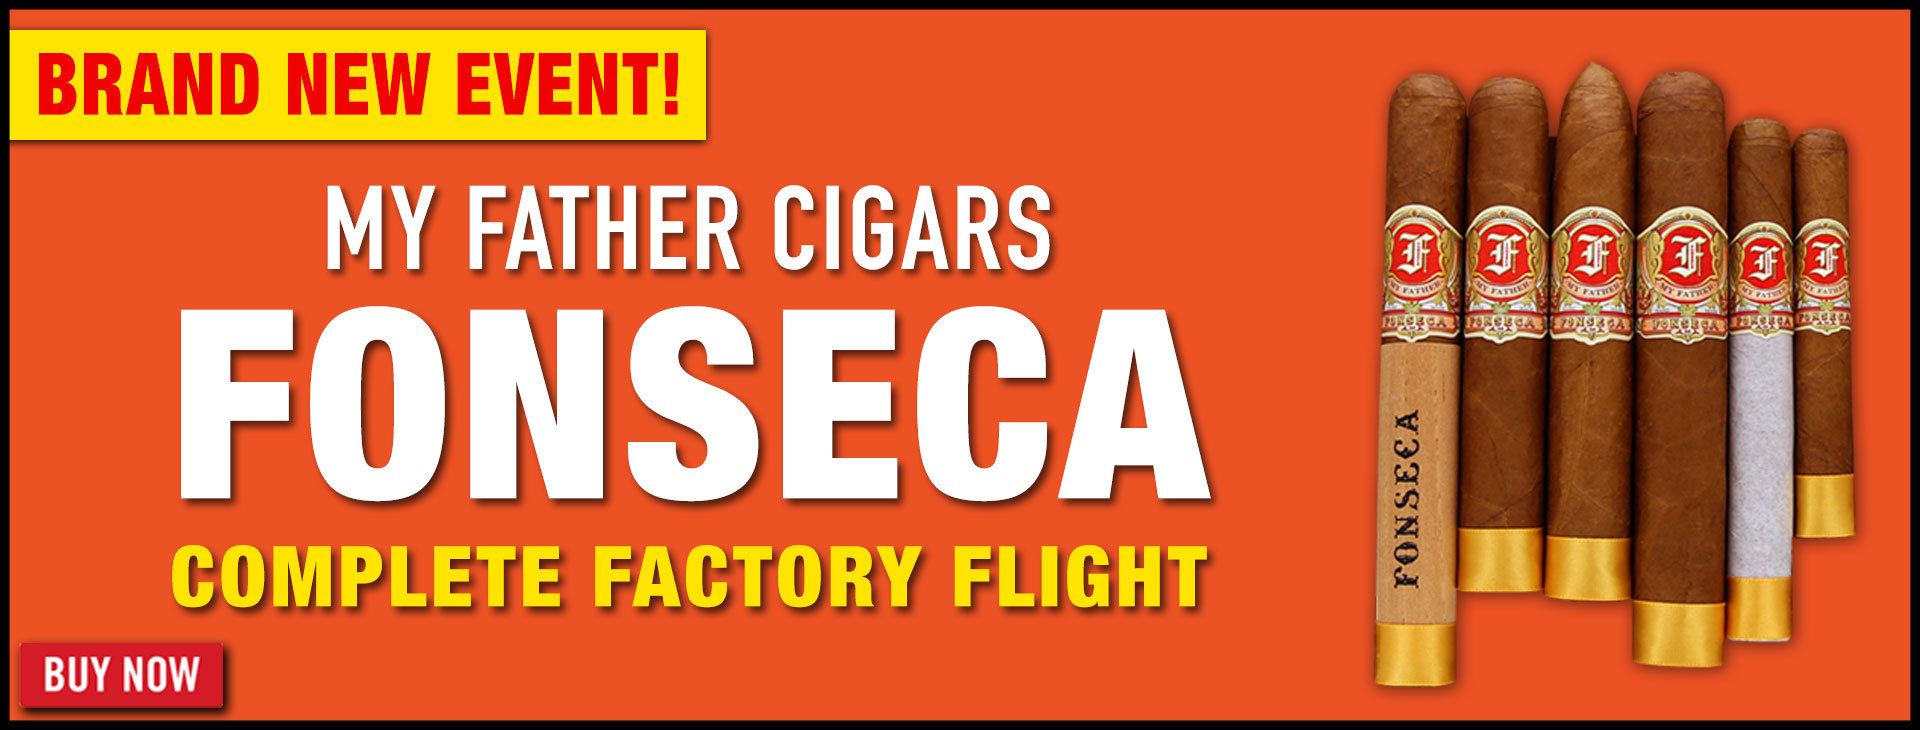 NEW: My Father Fonseca Factory Flights!